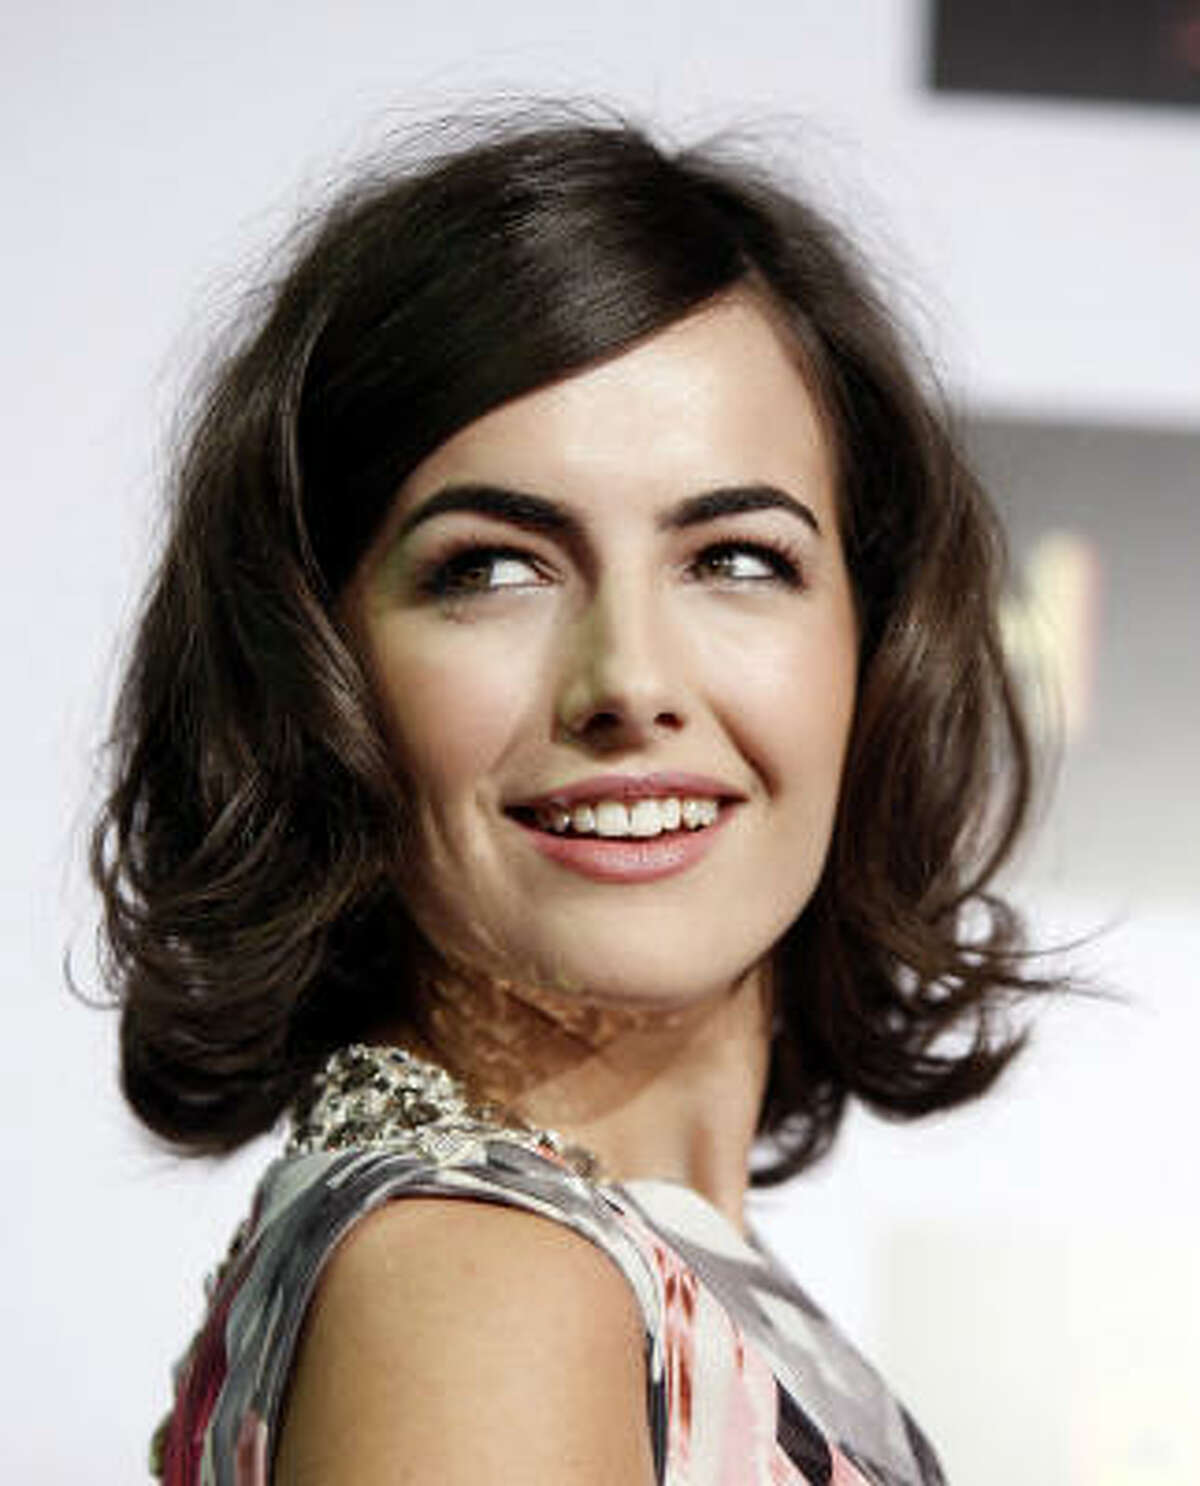 Actress Camilla Belle (and her flawless eyebrows)arrive at the premiere of Push in Los Angeles.